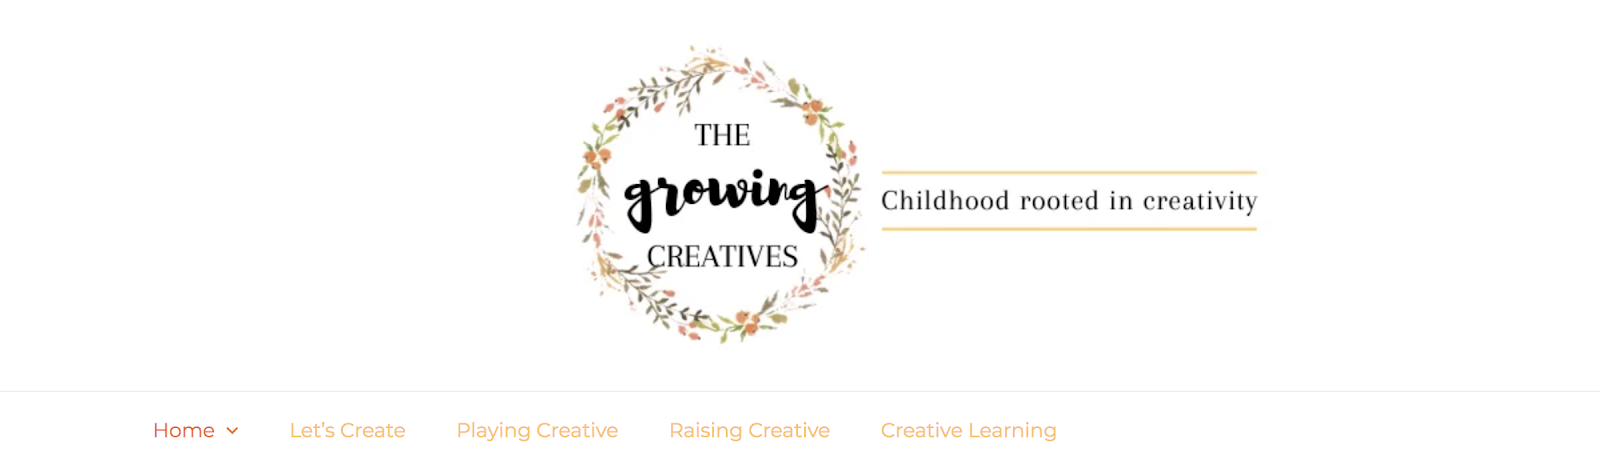 The Growing Creatives Blog for Children and Creativity (Screenshot)